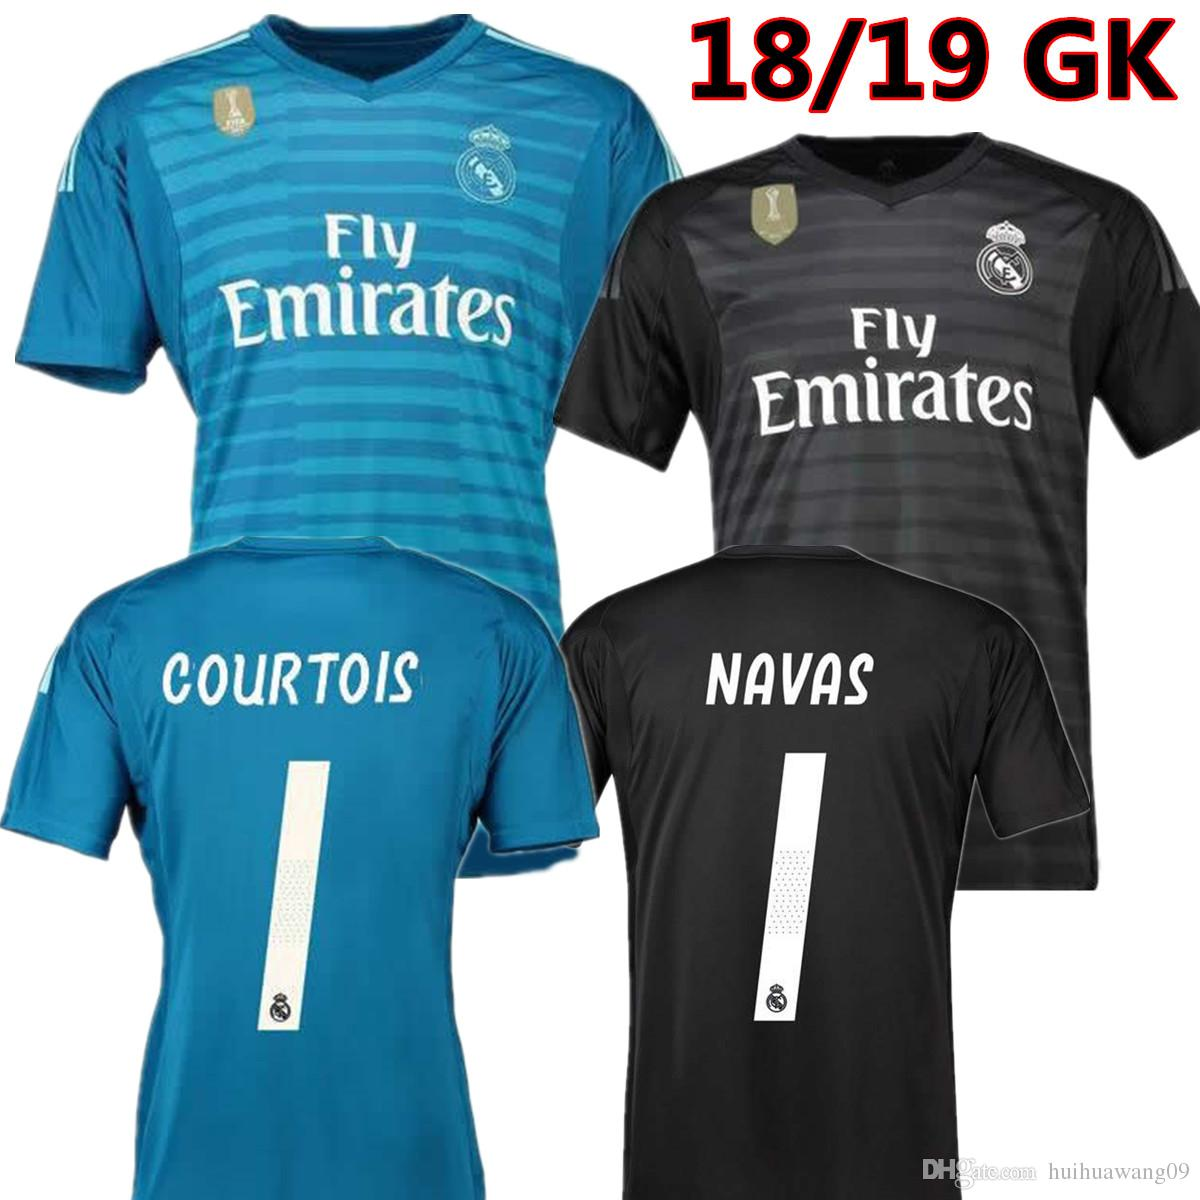 super popular 23621 c2395 2018 2019 Real Madrid Goalkeeper Jerseys 18 19 Keylor Navas Jersey Camiseta  de futbol 25 Thibaut Courtois 1 Real madrid BALE maillot de foot